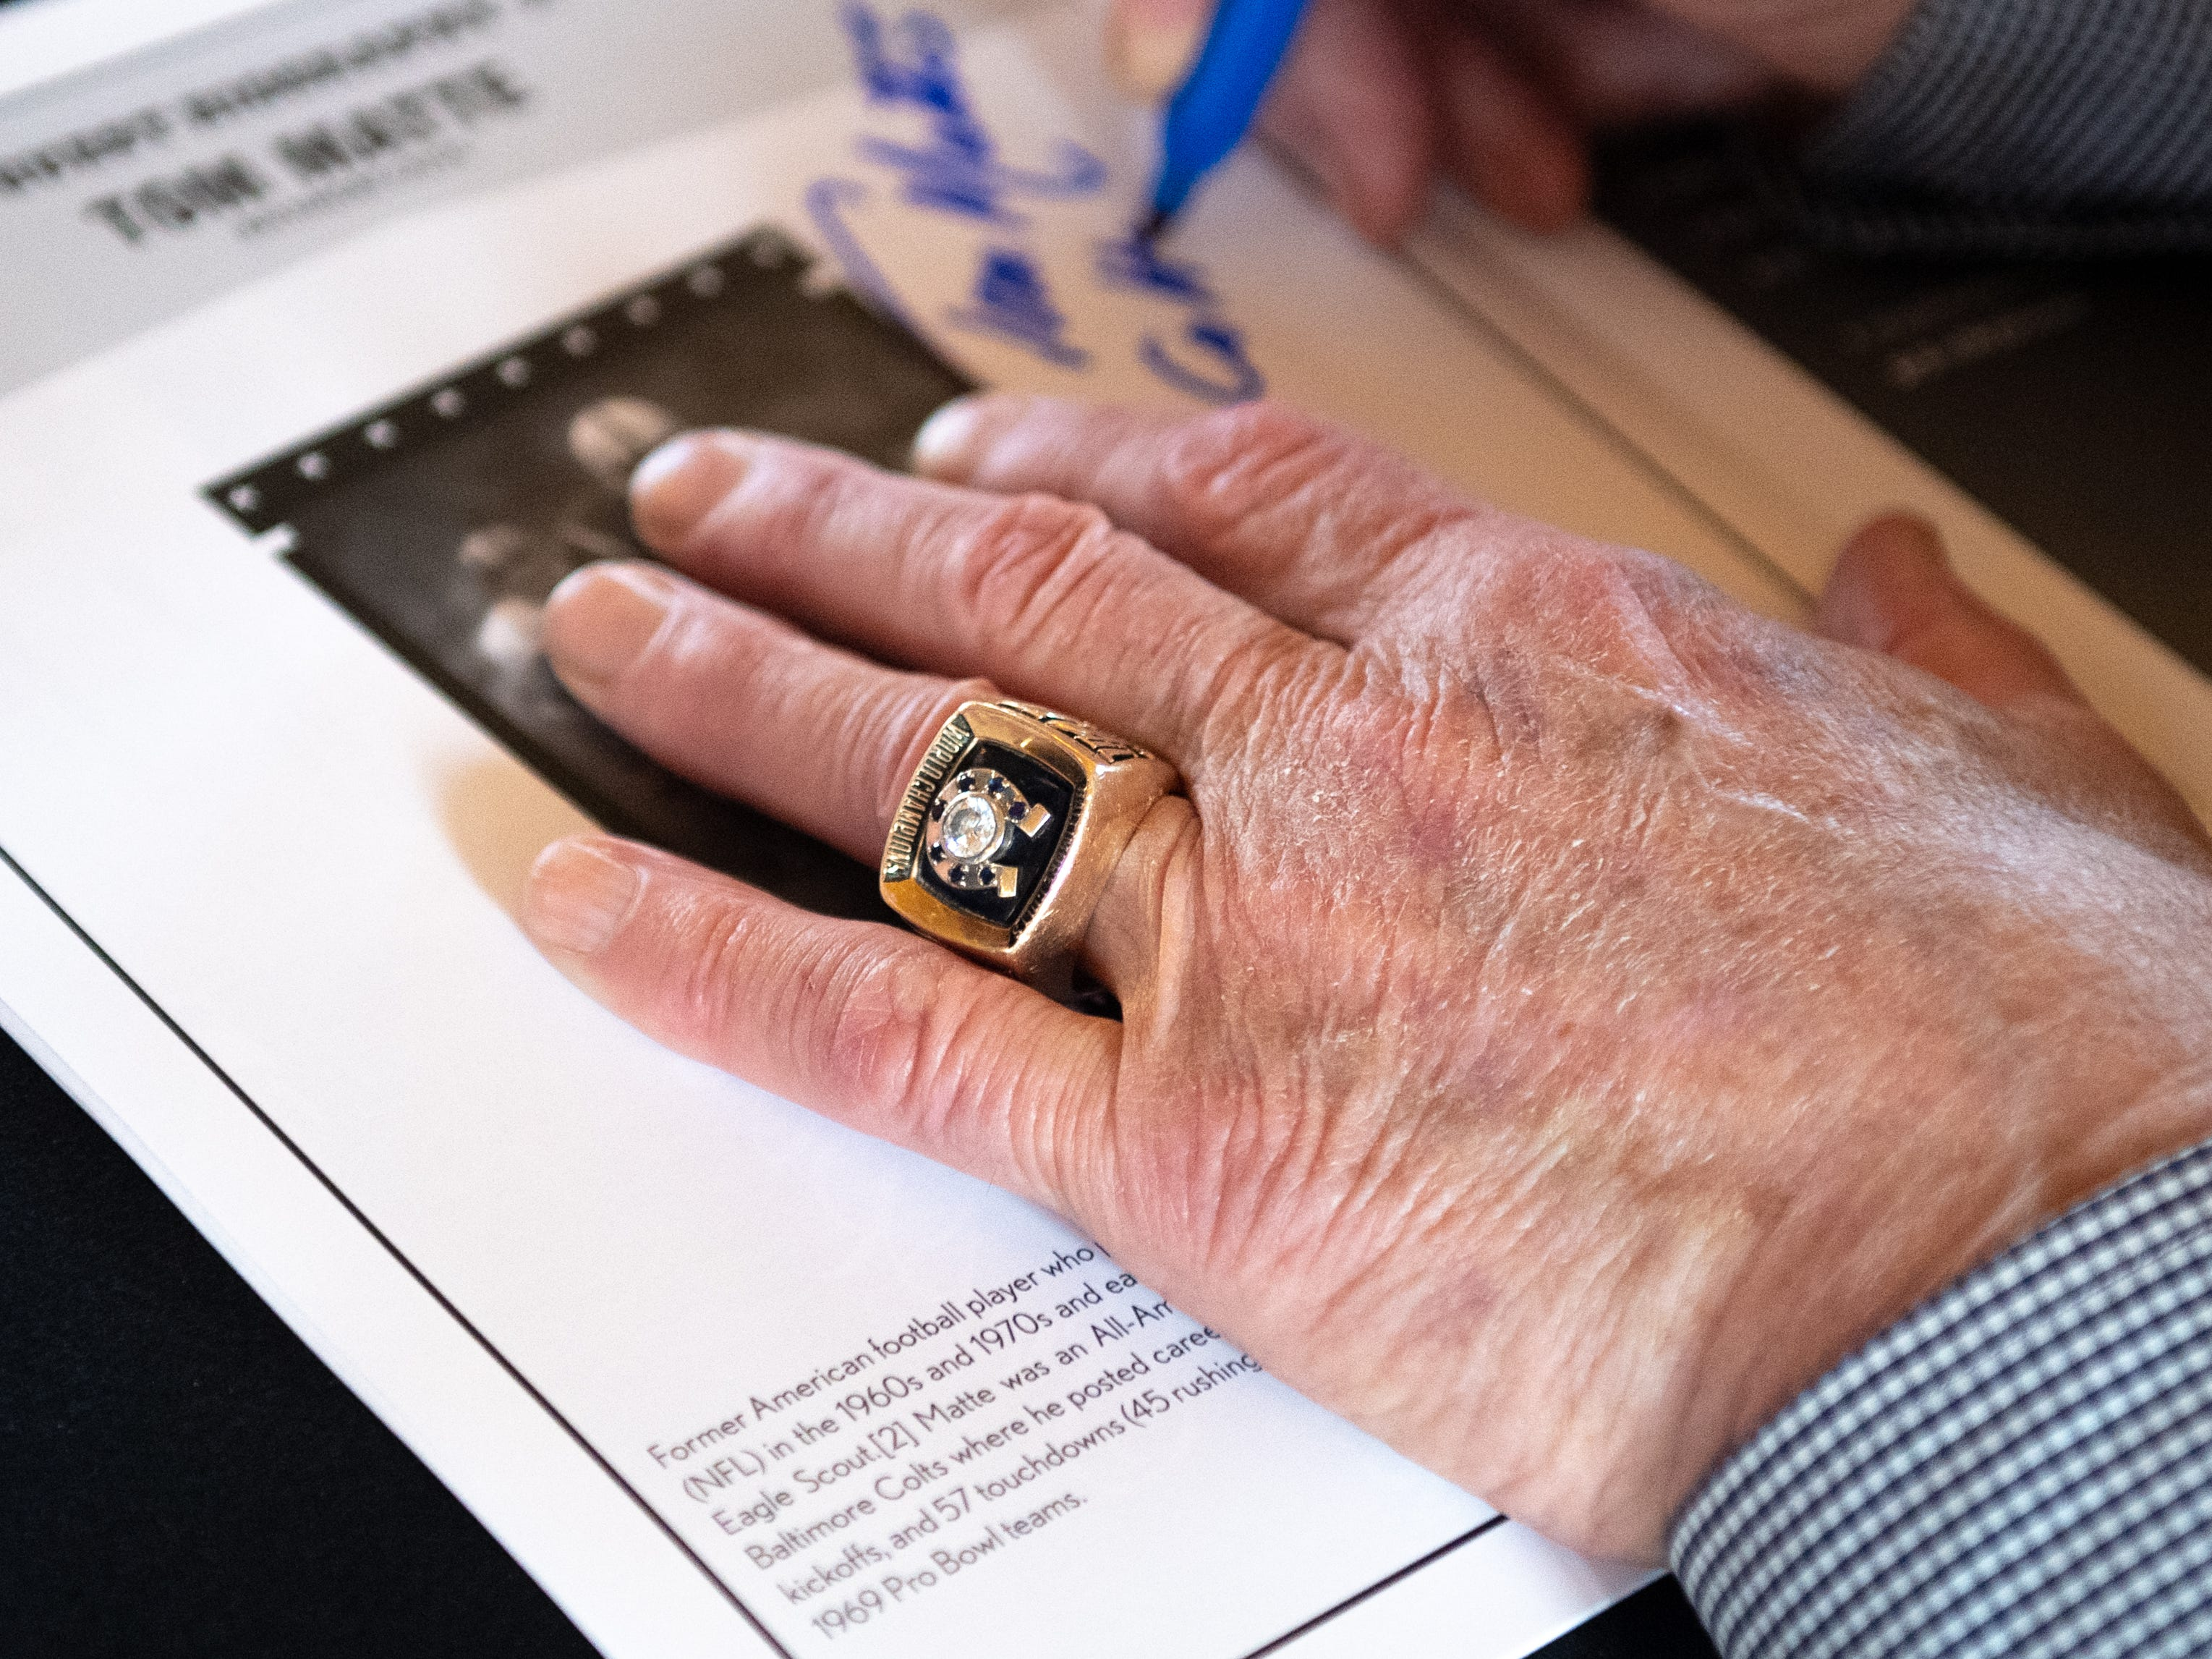 Hall of fame running back Tom Matte sports his Super Bowl ring while signing autographs during the 55th Annual York Area Sports Night, April 4, 2019 at the Heritage Hills Golf and Conference Center.